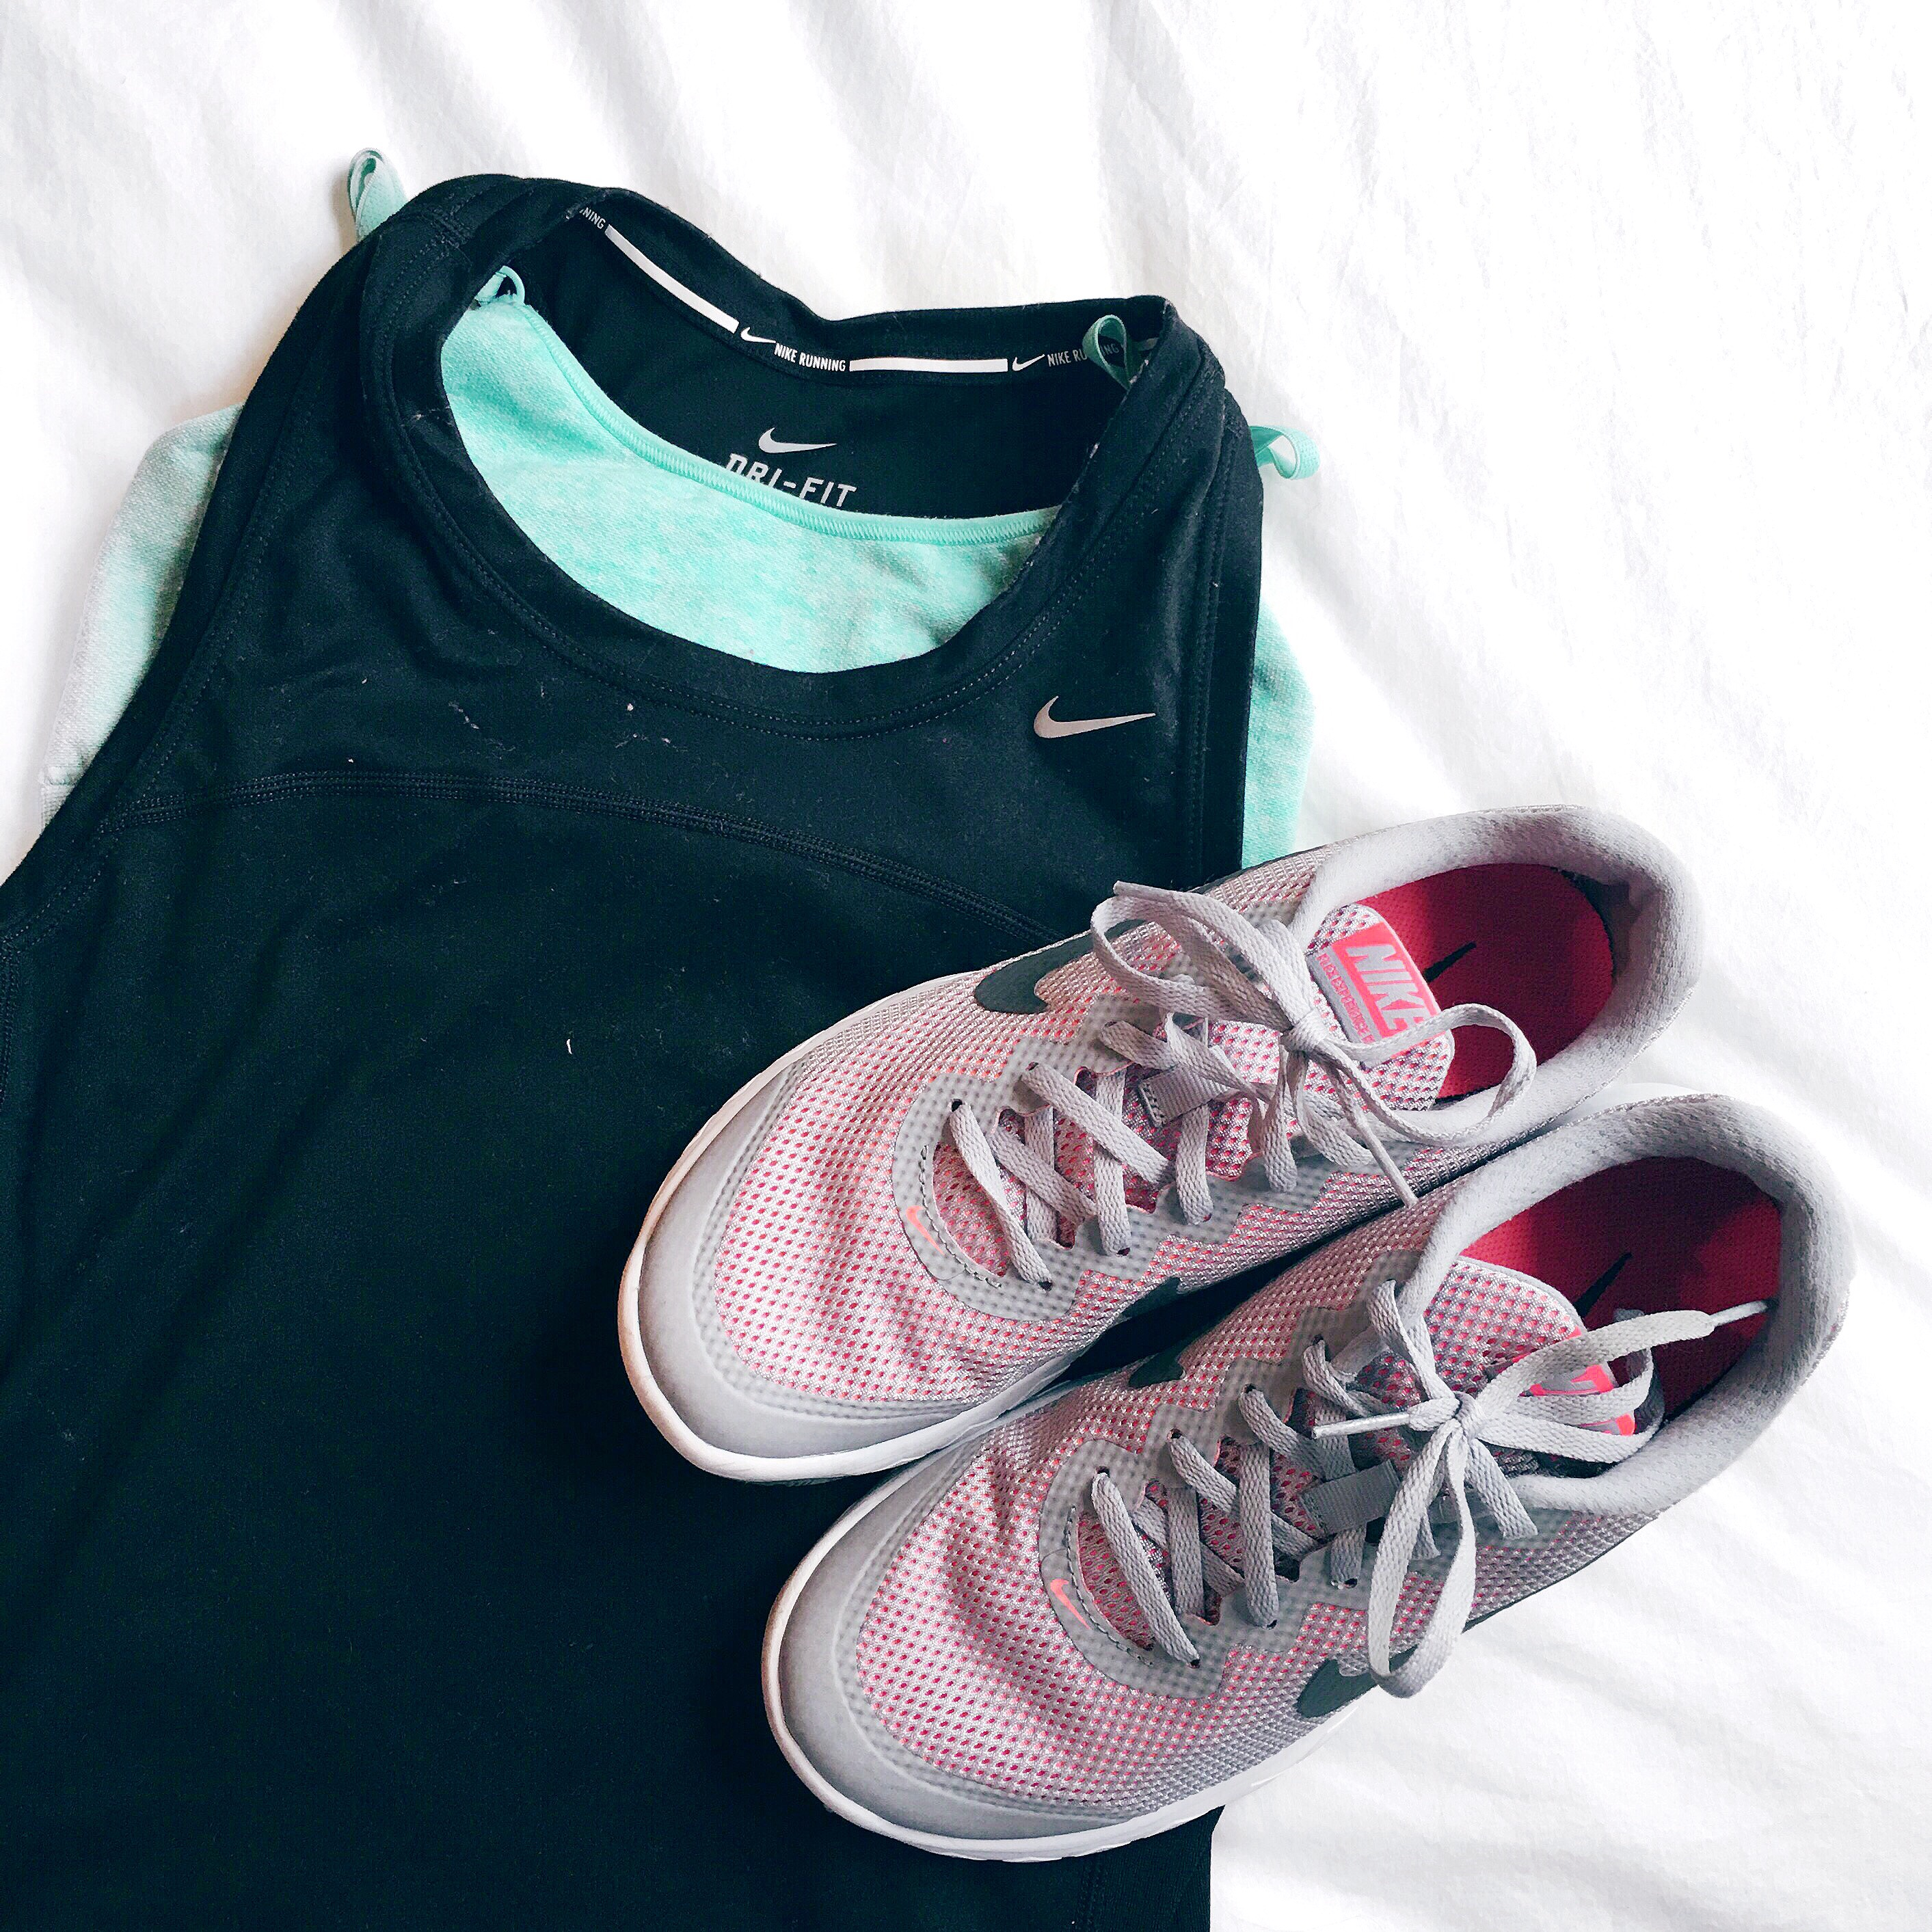 cheap workout clothes, reach your fitness goals